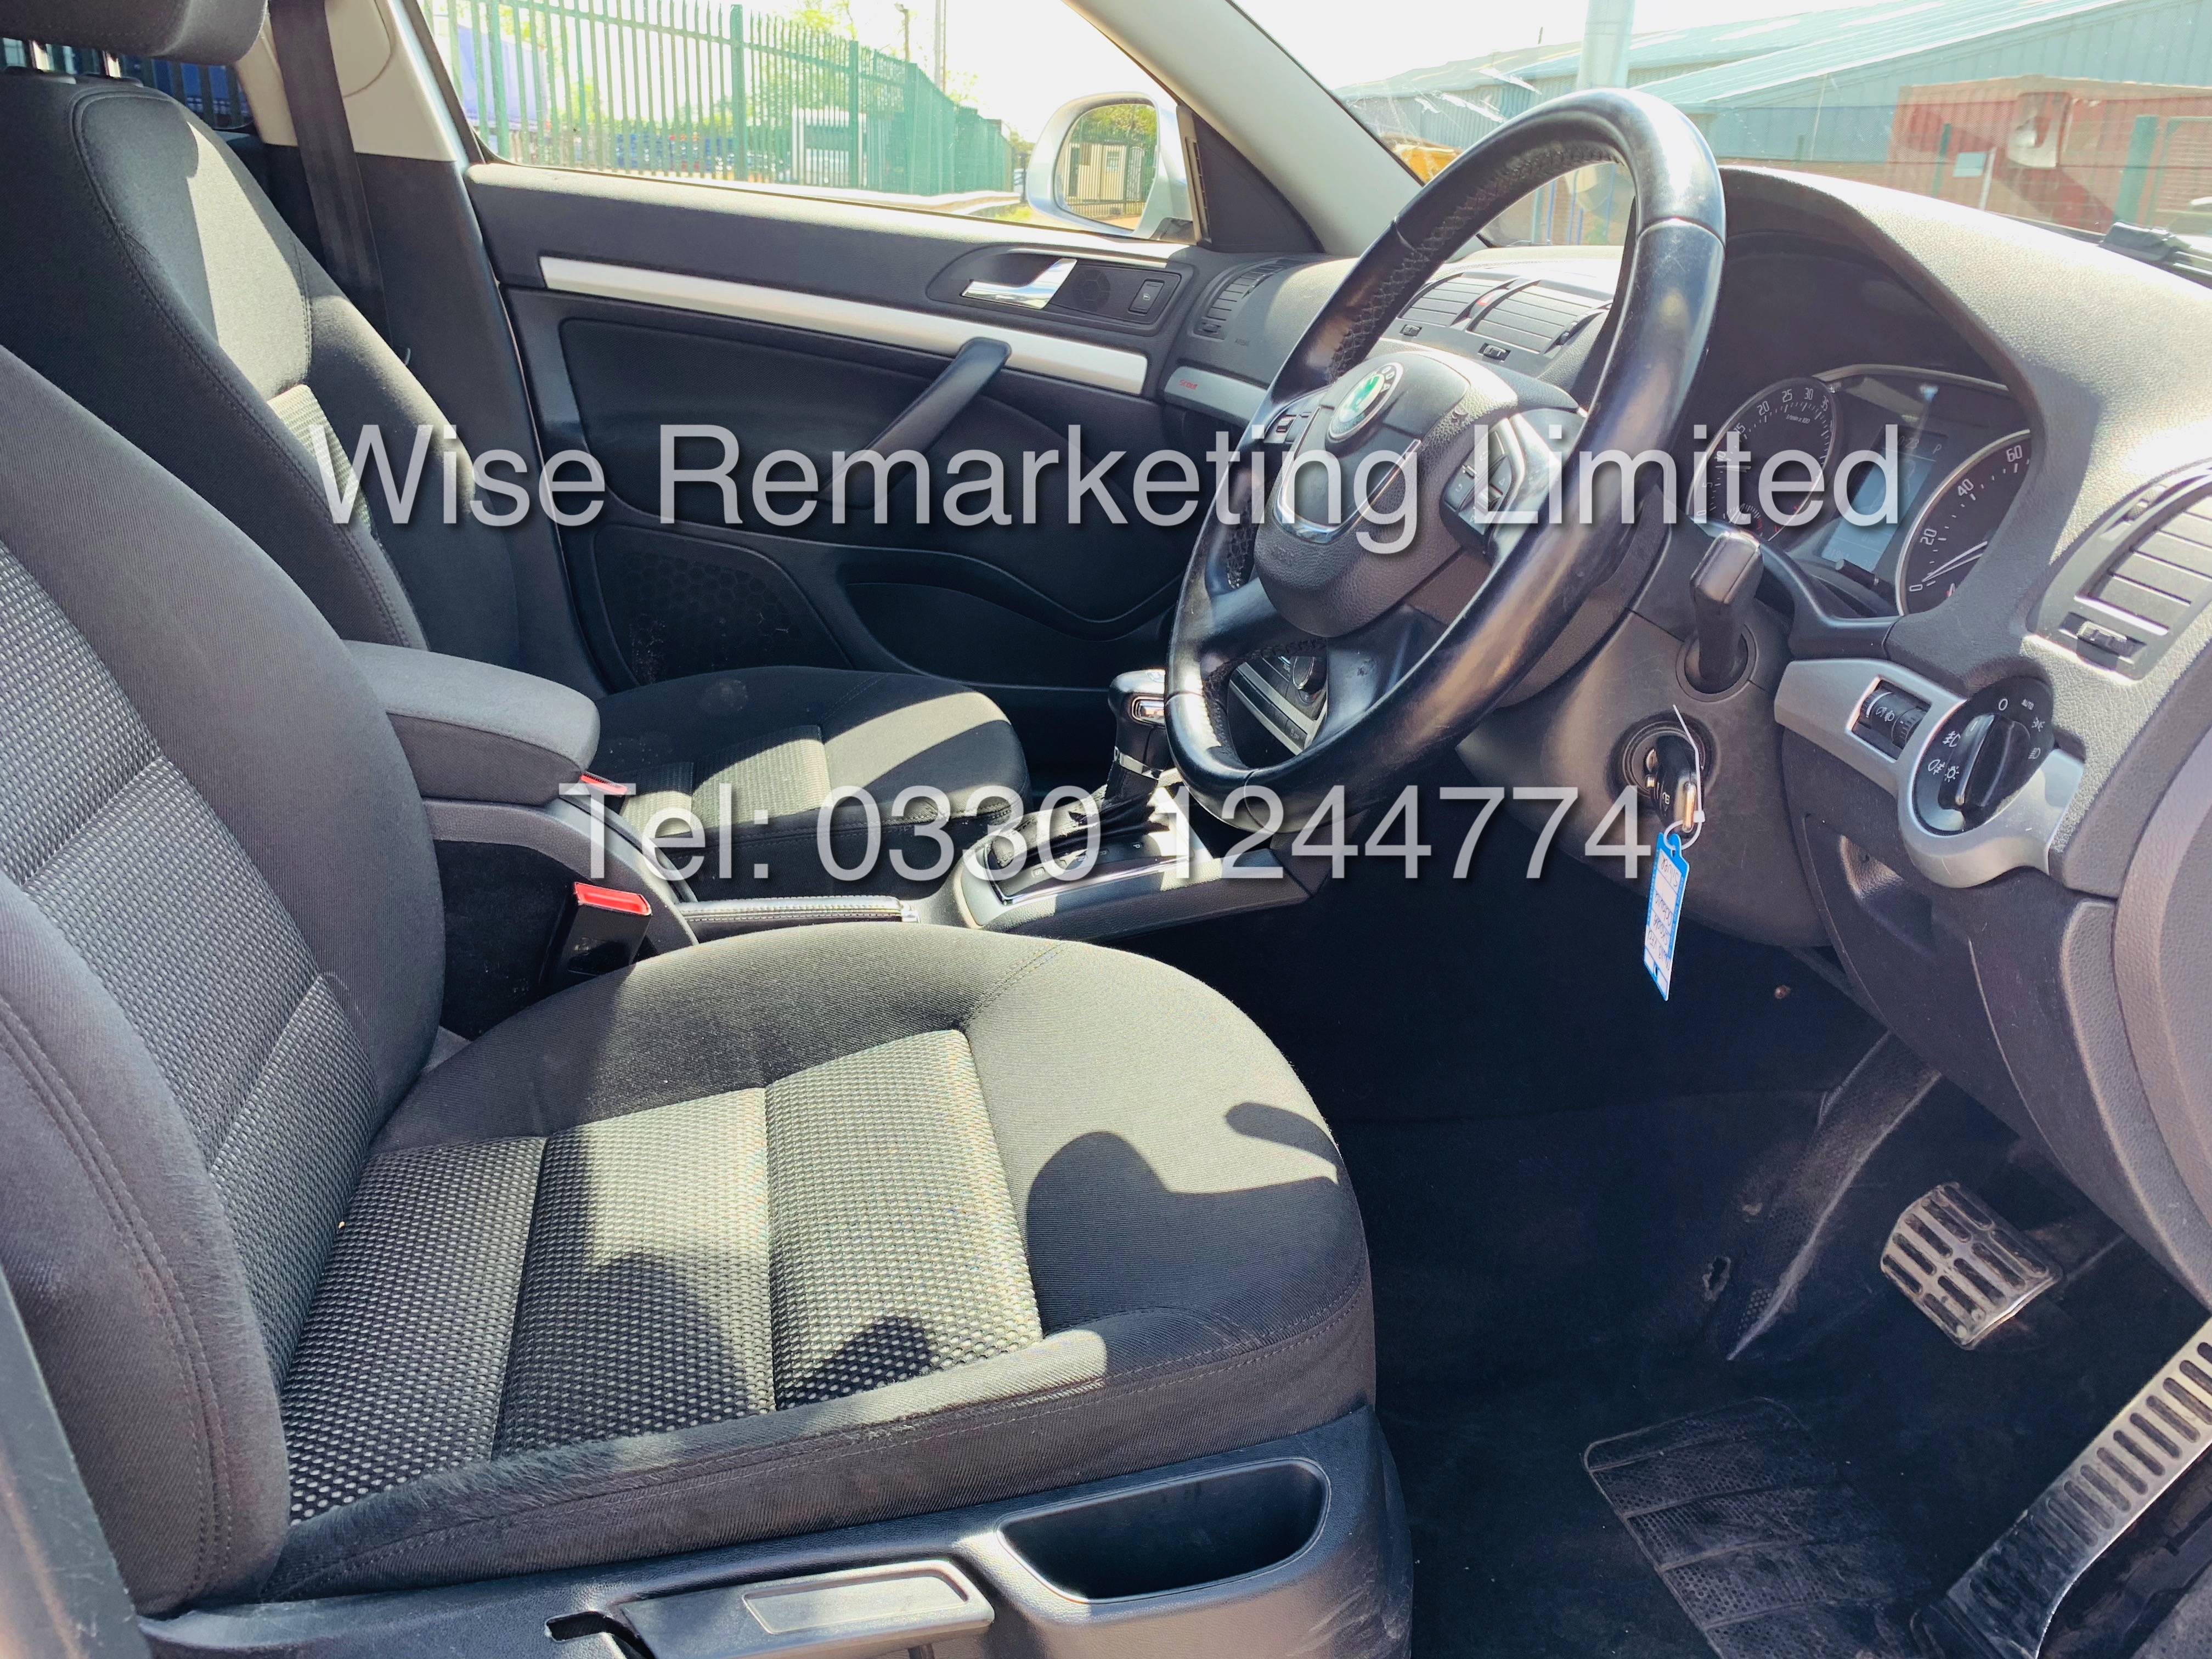 SKODA OCTAVIA (SCOUT) 2.0tdi DSG AUTOMATIC ESTATE / 2013 / 1 OWNER WITH FULL HISTORY / 140BHP / 4x4 - Image 9 of 14